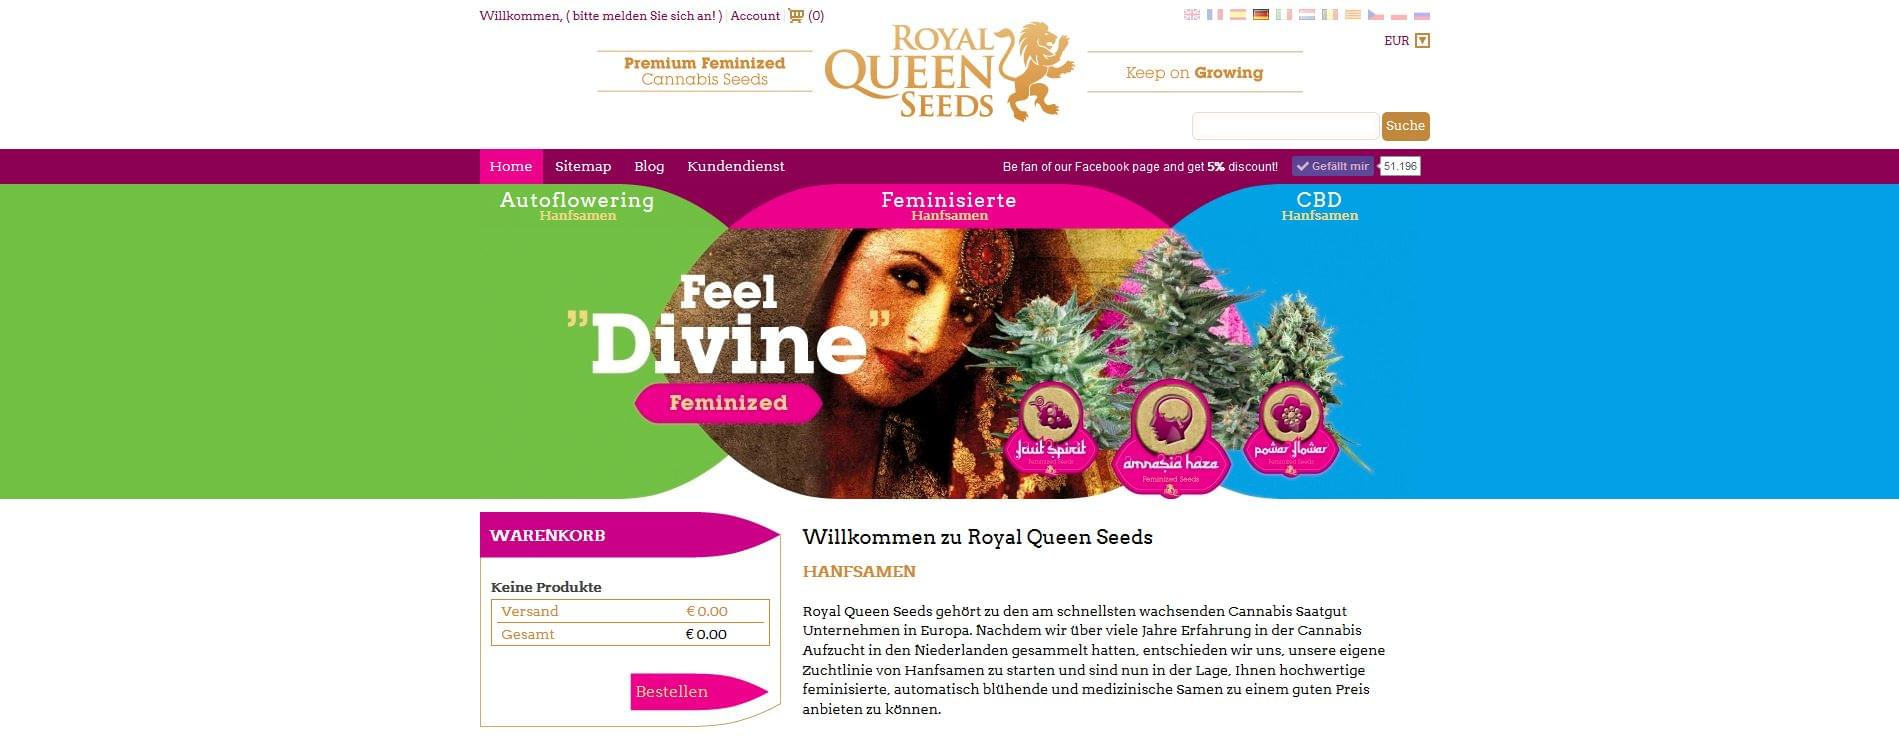 Royal Queen Seeds Germany